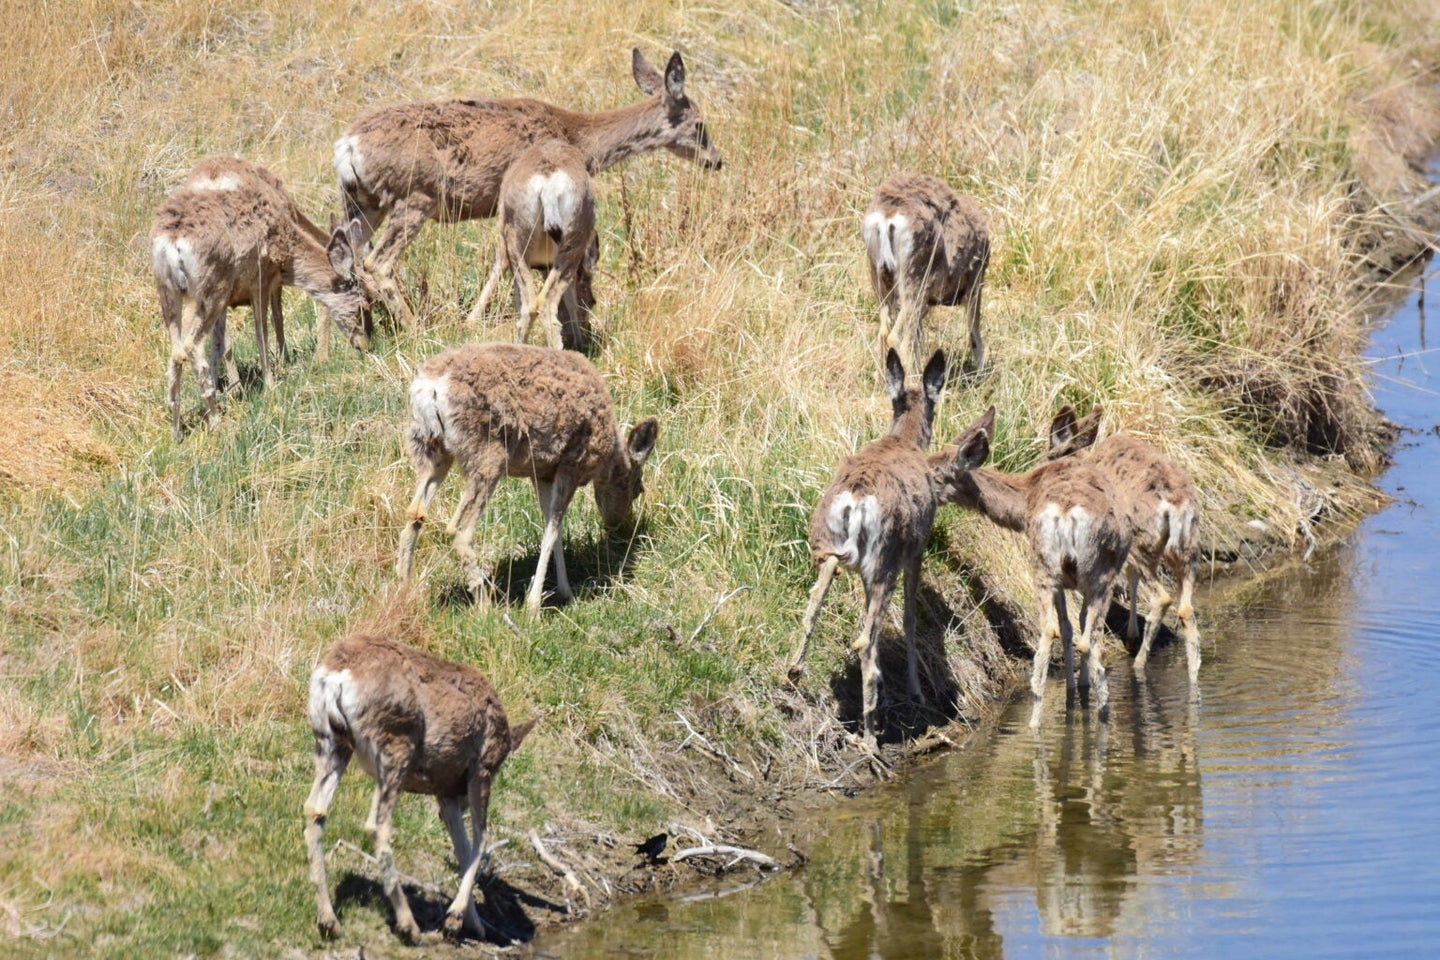 Mule deer herd grazing in shallow water and dry grass